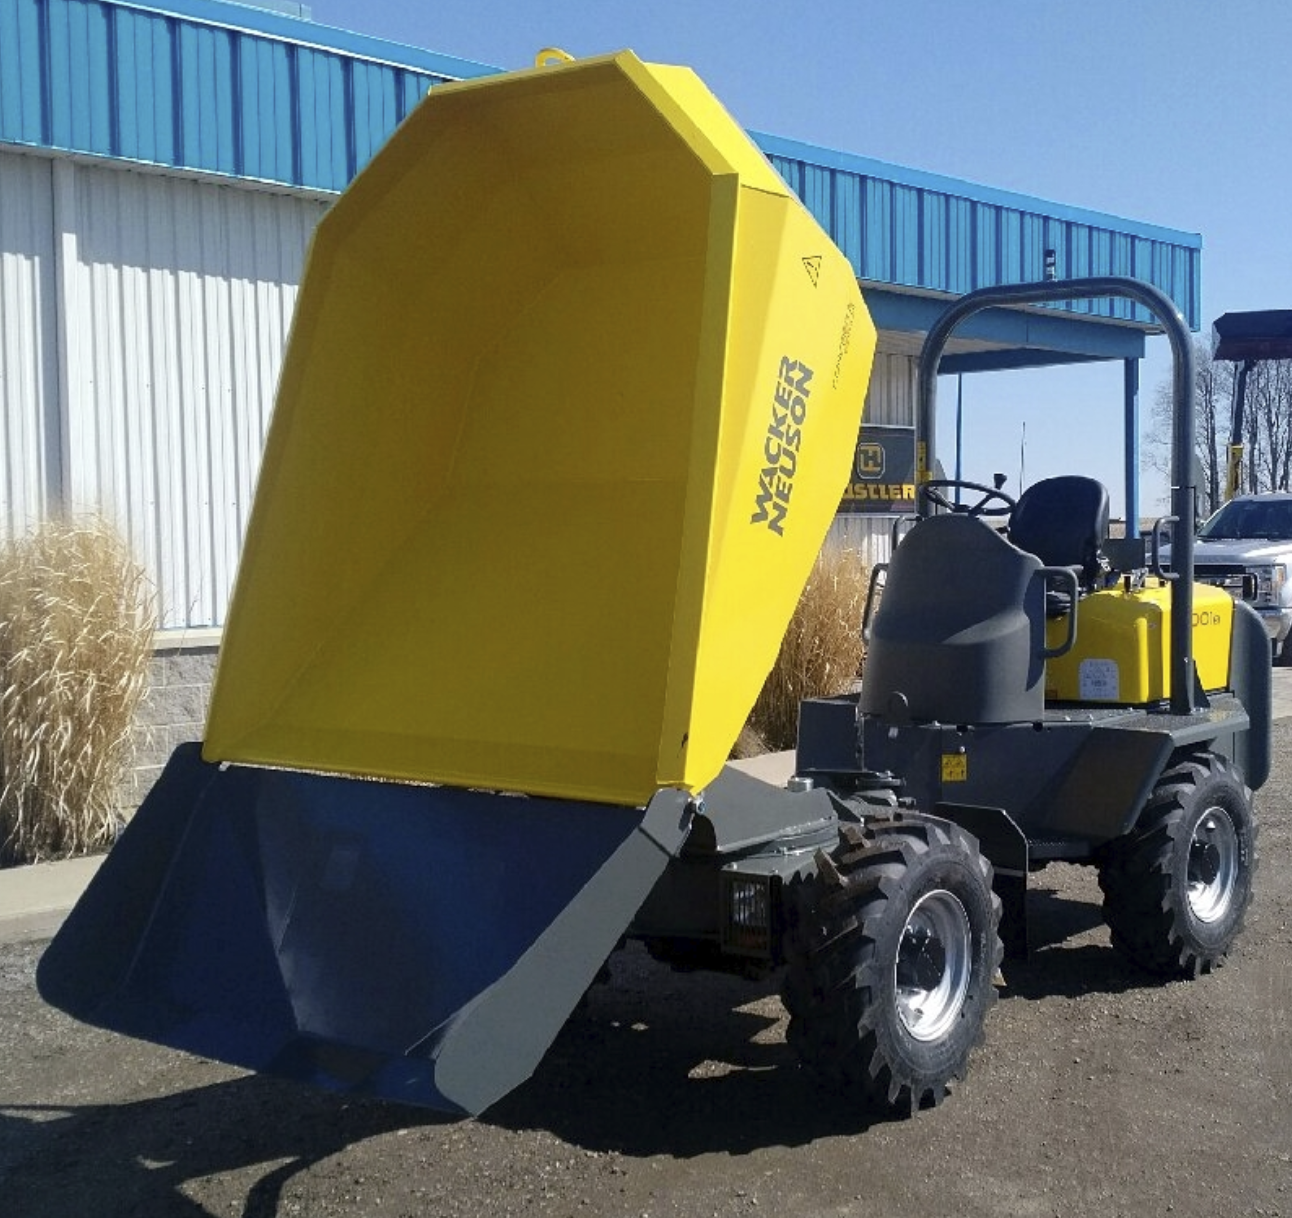 Dumper, Wheel Image